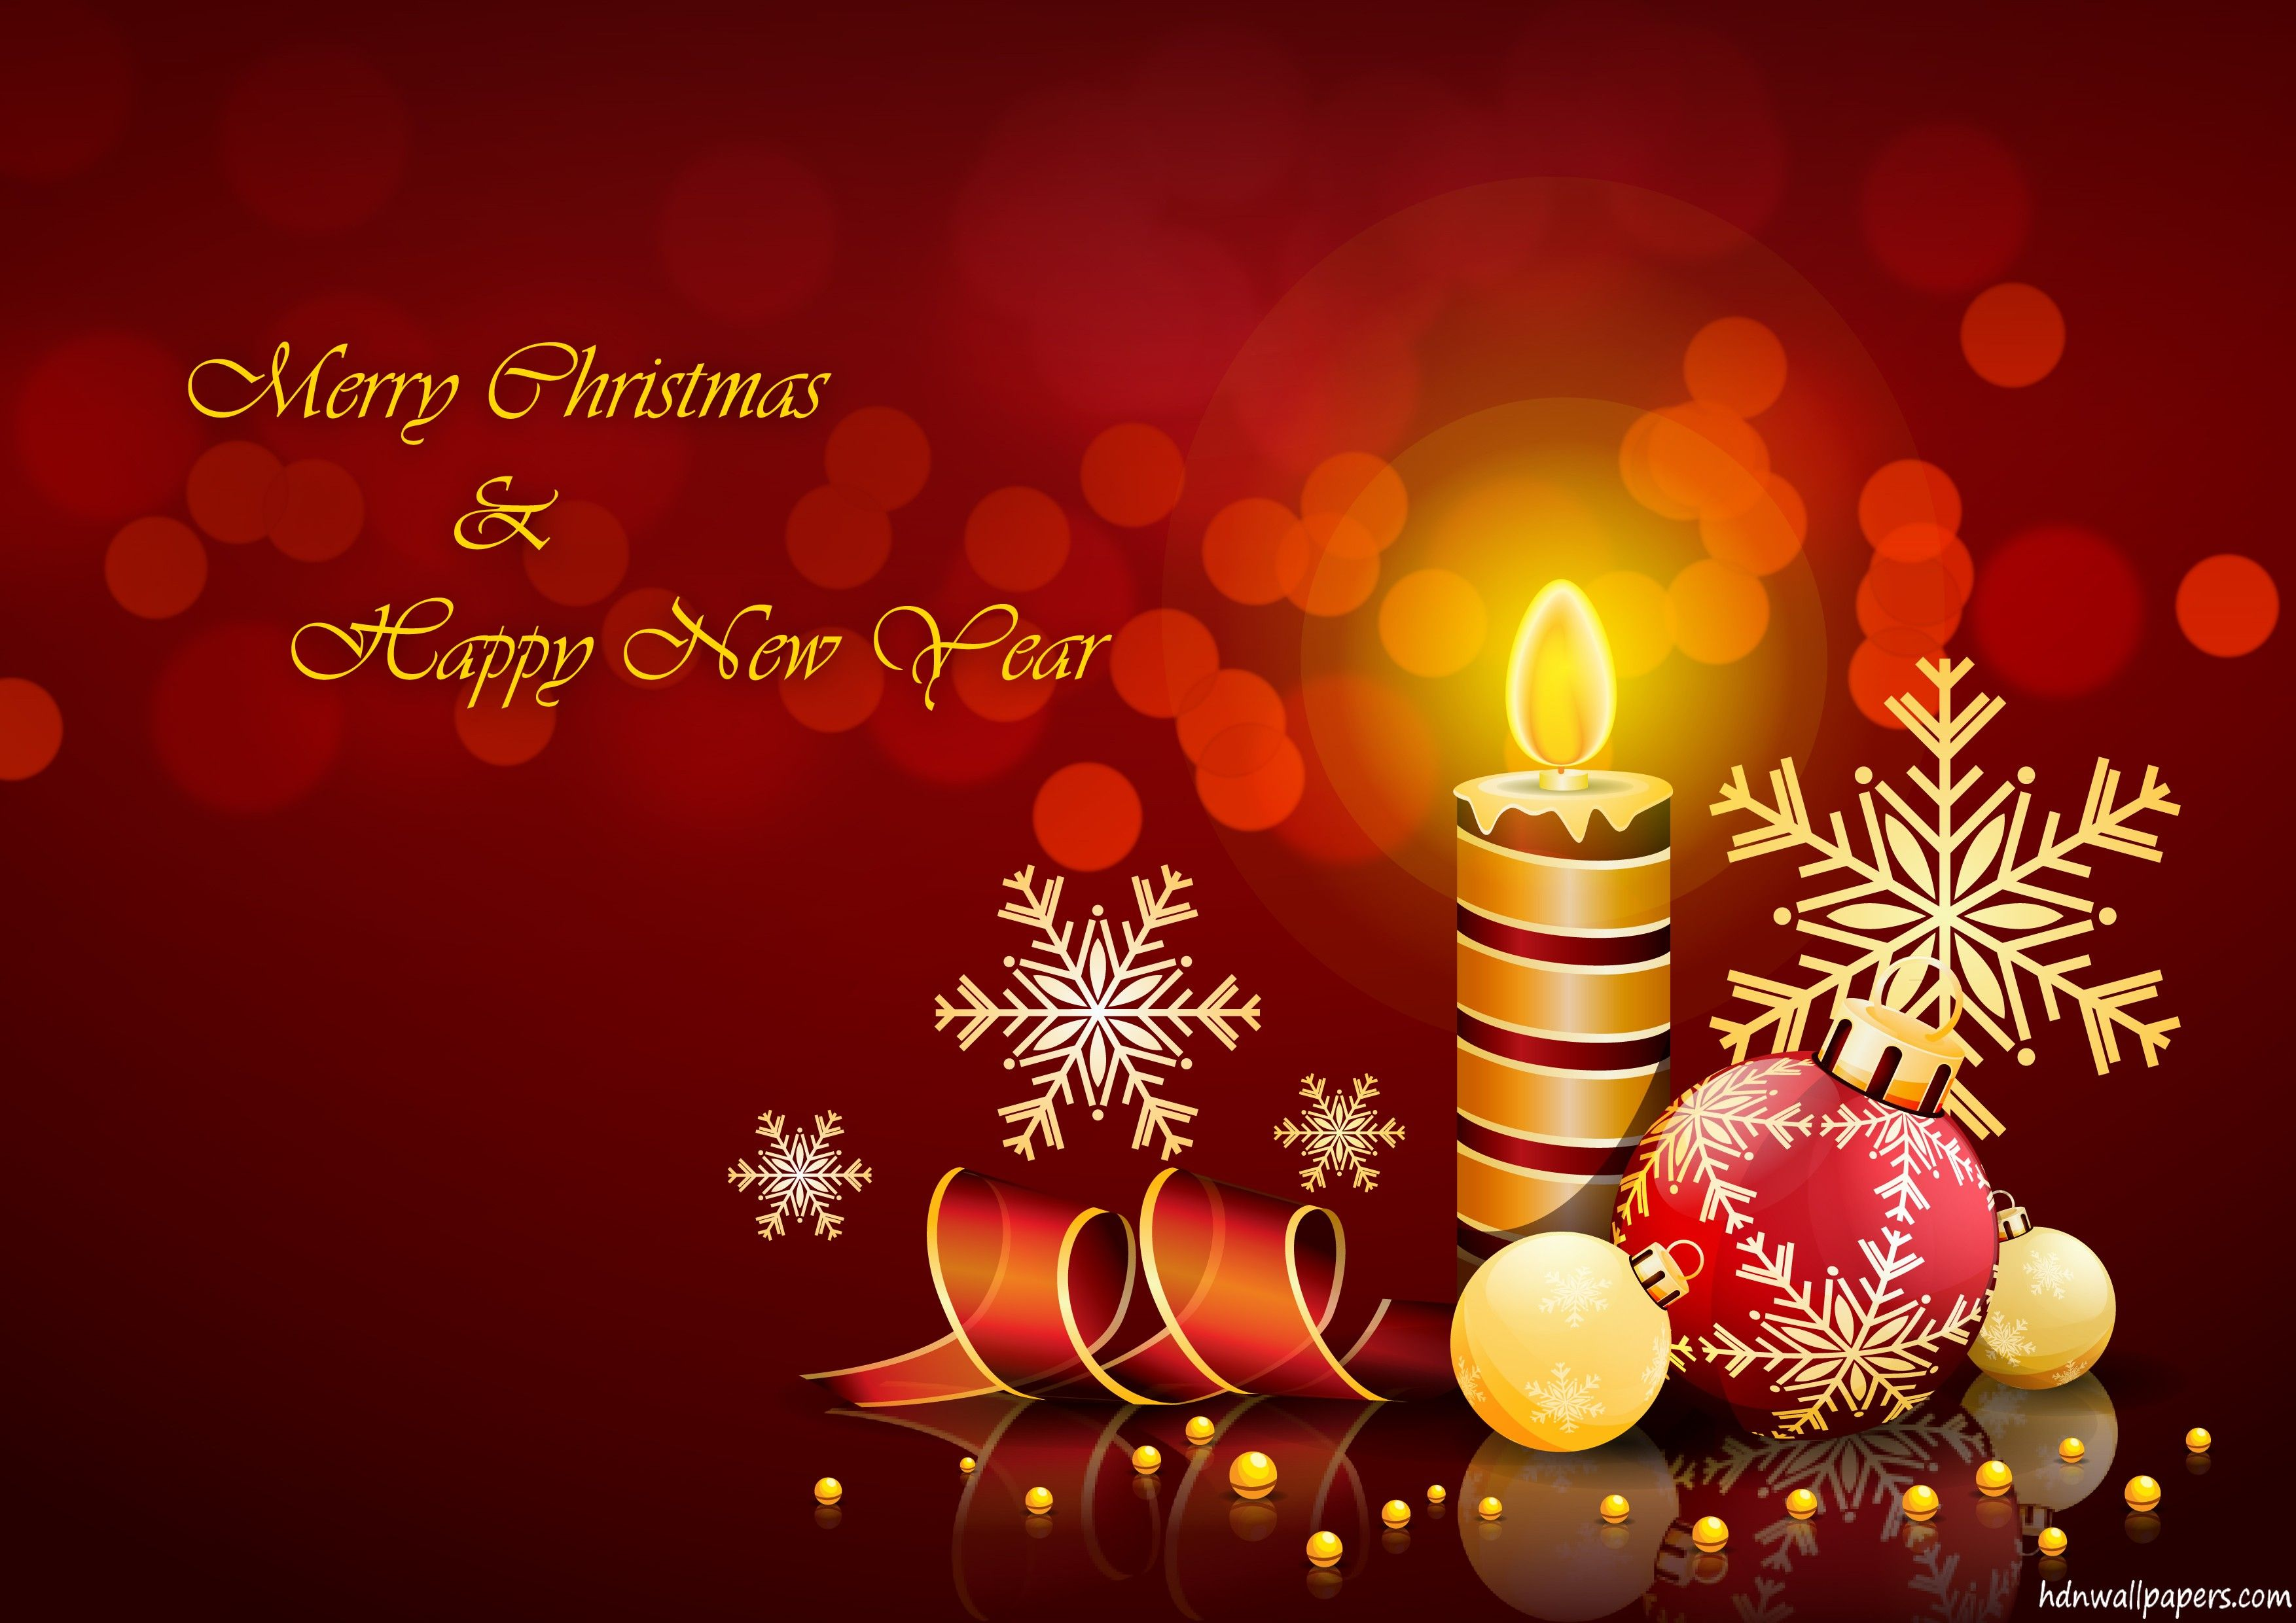 Christmas and new year greetings images free reviewwalls free christmas and new year greetings gotta yotti co m4hsunfo